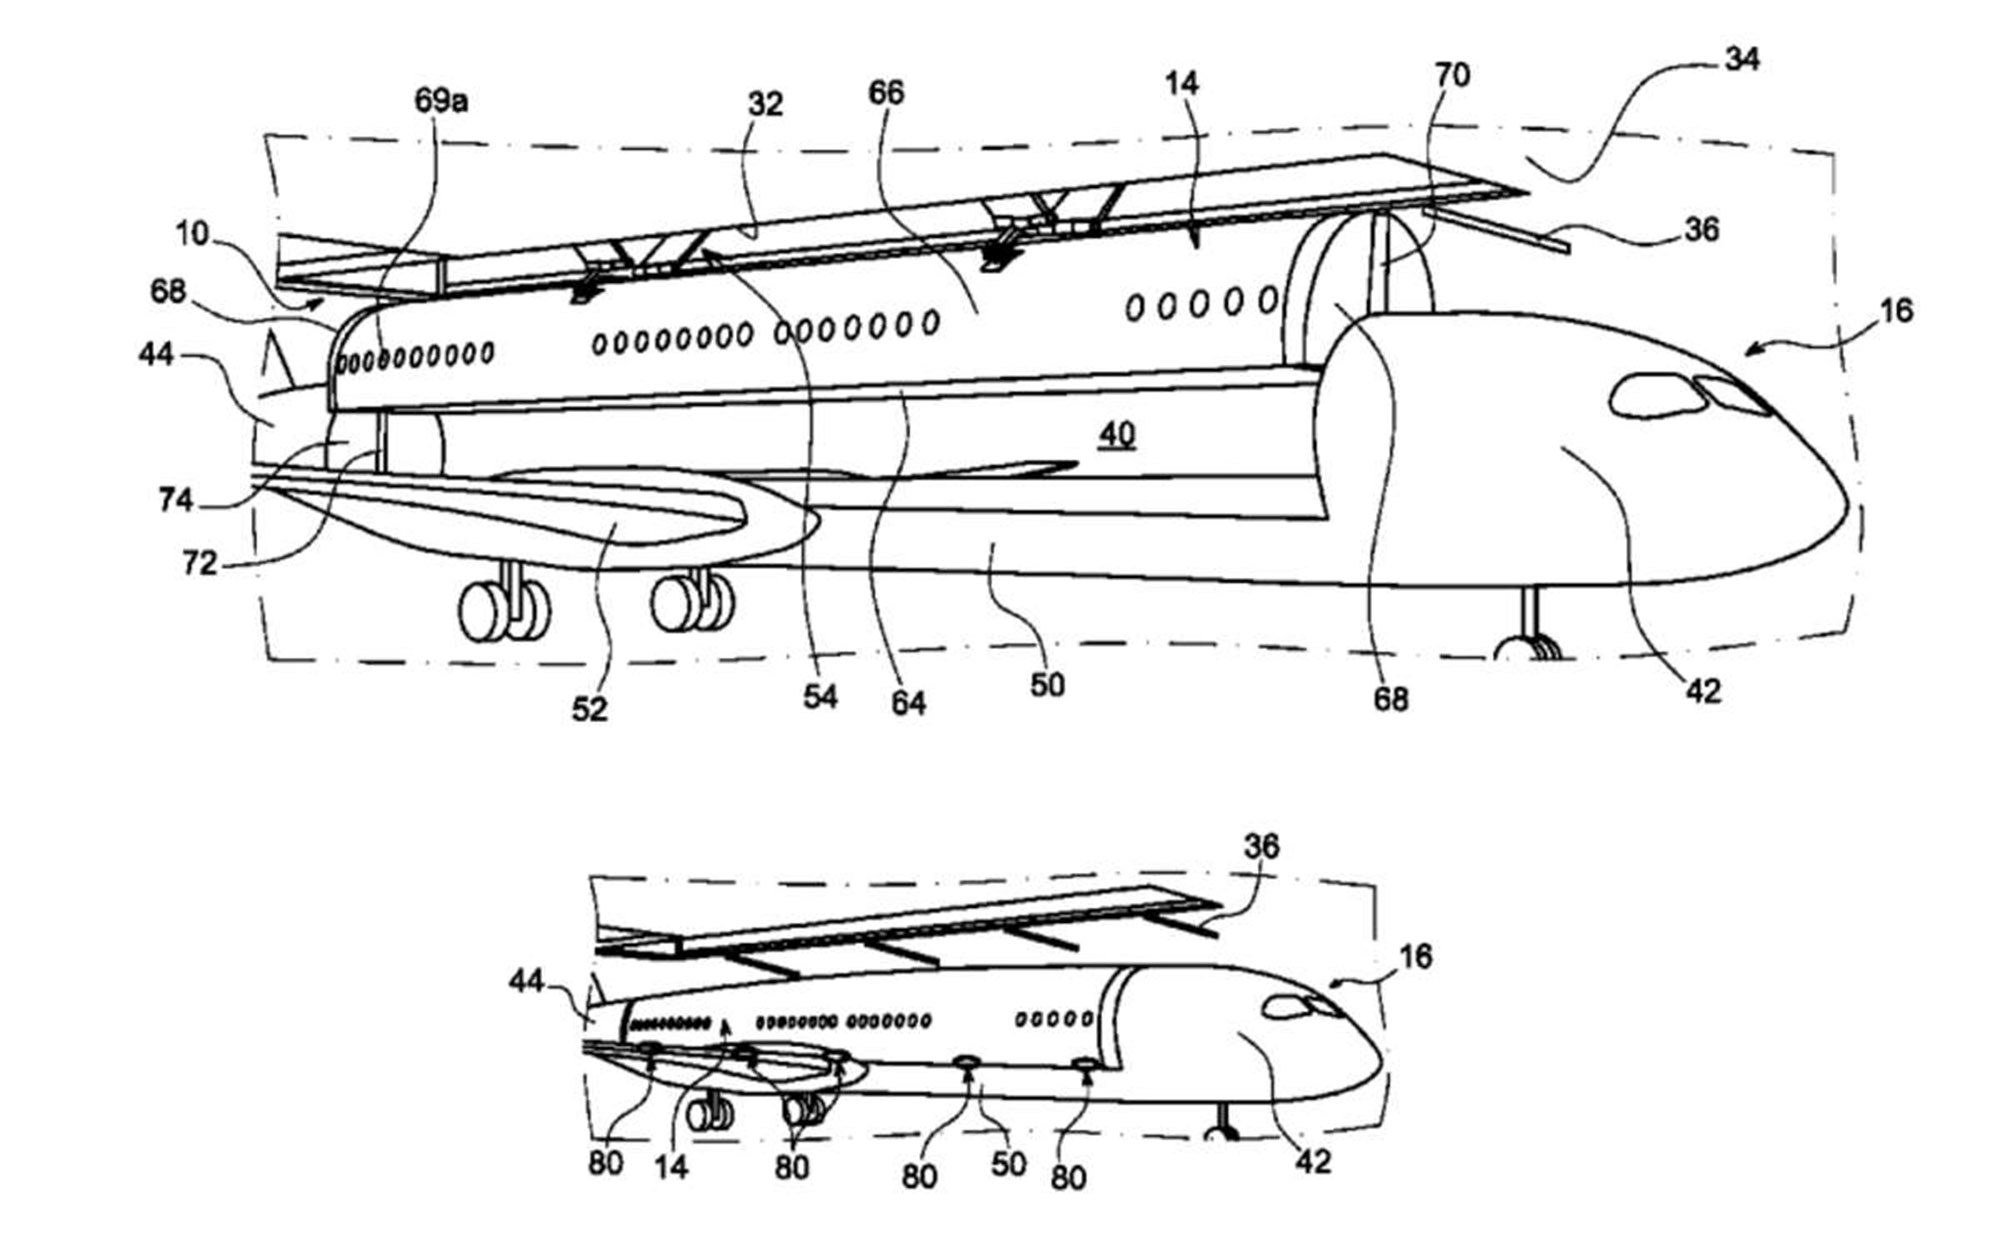 airbus-drawing-PLANS1215.jpg